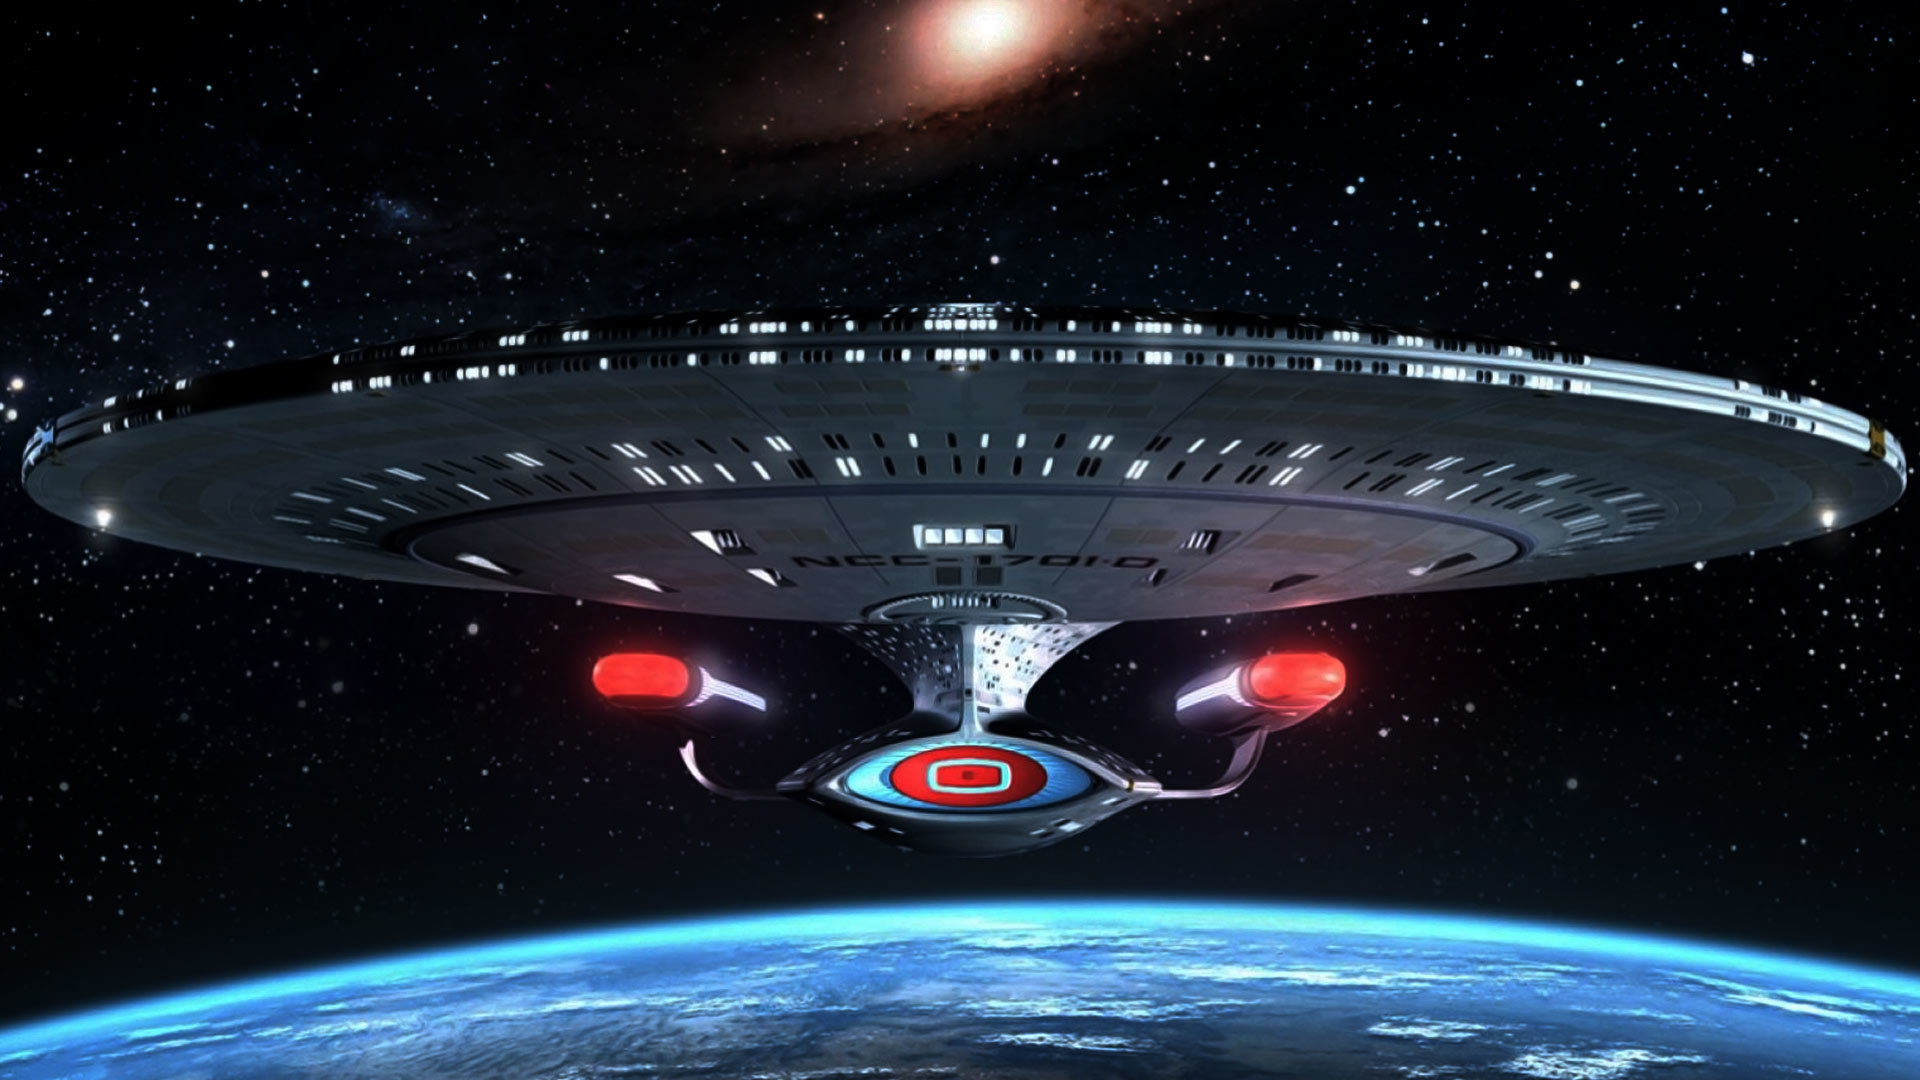 Download hd 1080p Star Trek PC background ID:389332 for free